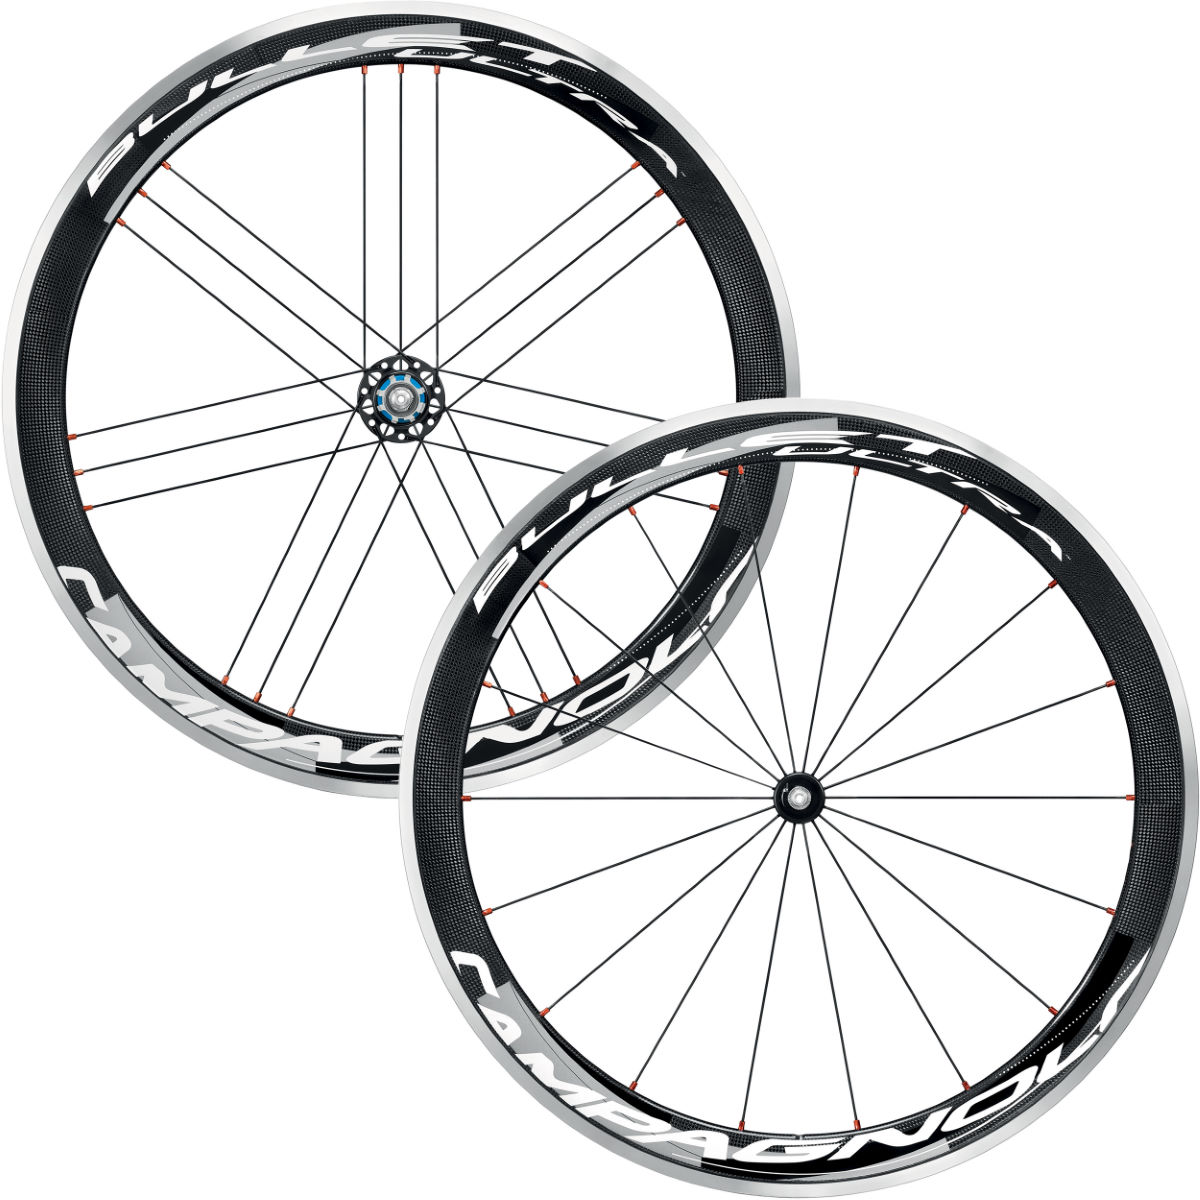 Paires de roues Campagnolo Bullet Ultra 50 Cult Dark Label (carbone) - Shimano/SRAM Freehub Black/White/Grey Roues performance